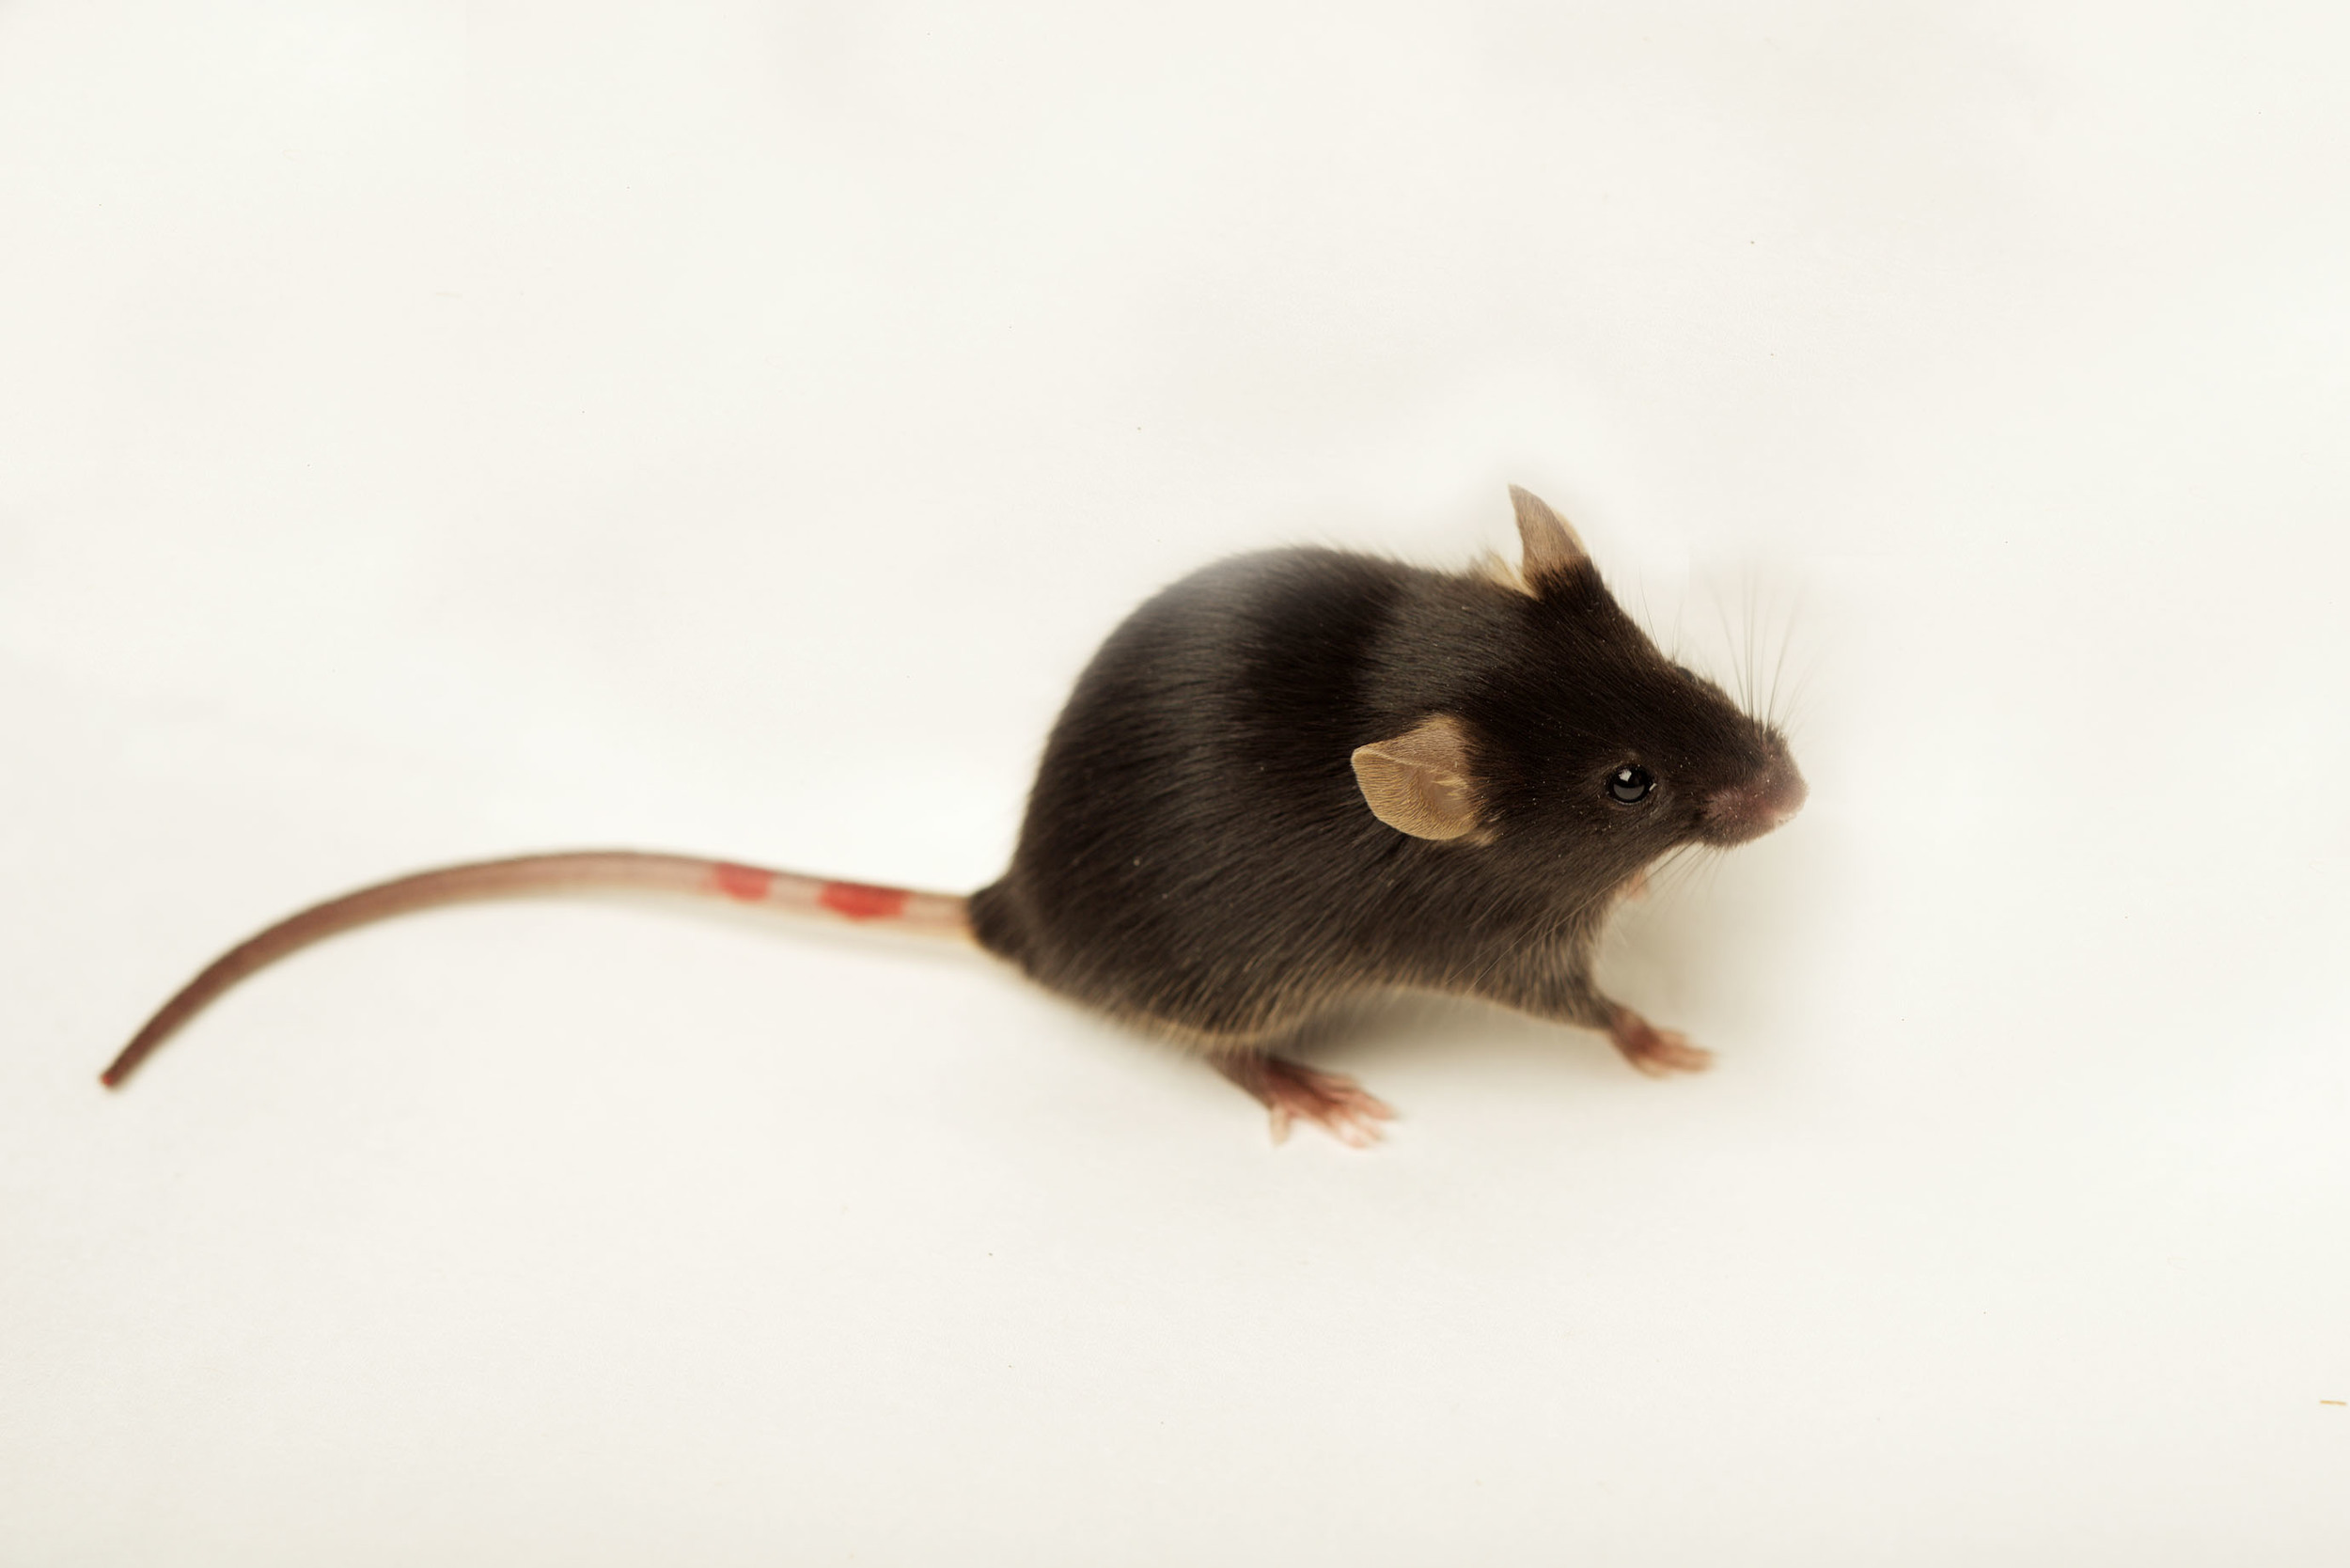 A C57/Bl6 mouse ( Mus musculus ) - frequently used as hosts in our experimental infections. (Credit: Sinclair Stammers)